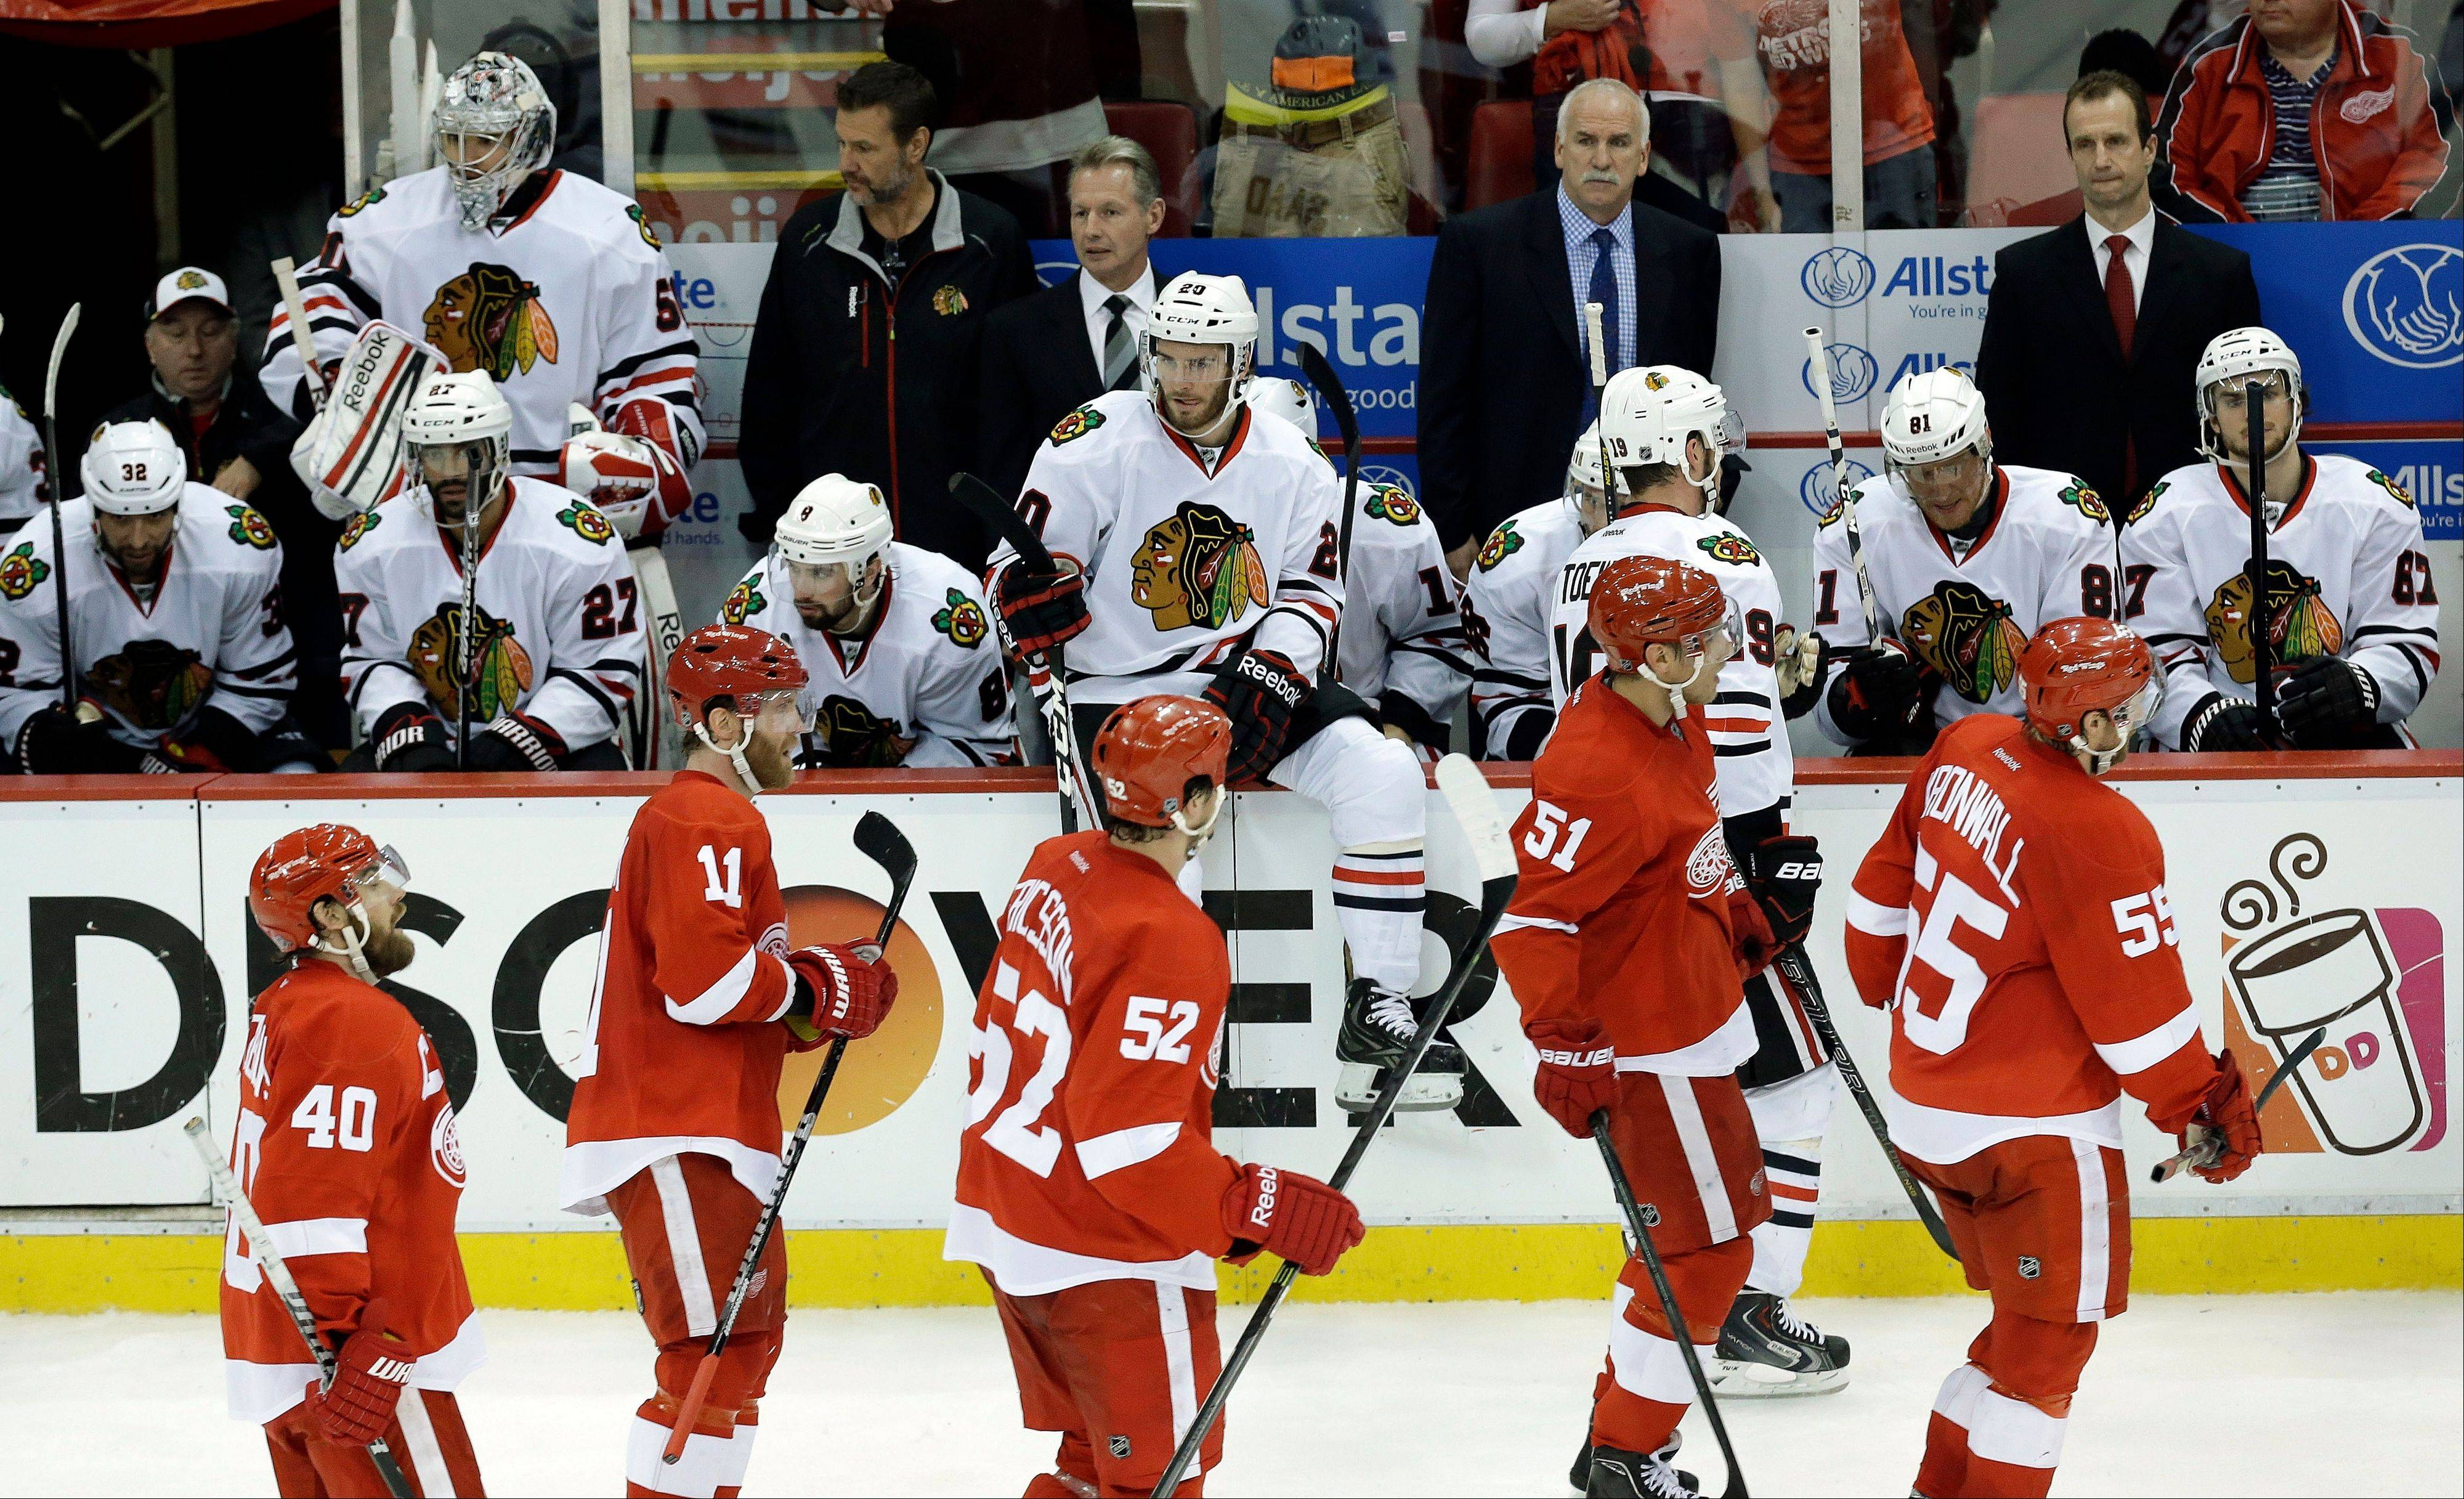 Detroit Red Wings, foreground, skate past the Chicago Blackhawks bench after Daniel Cleary�s empty-net goal during the third period.